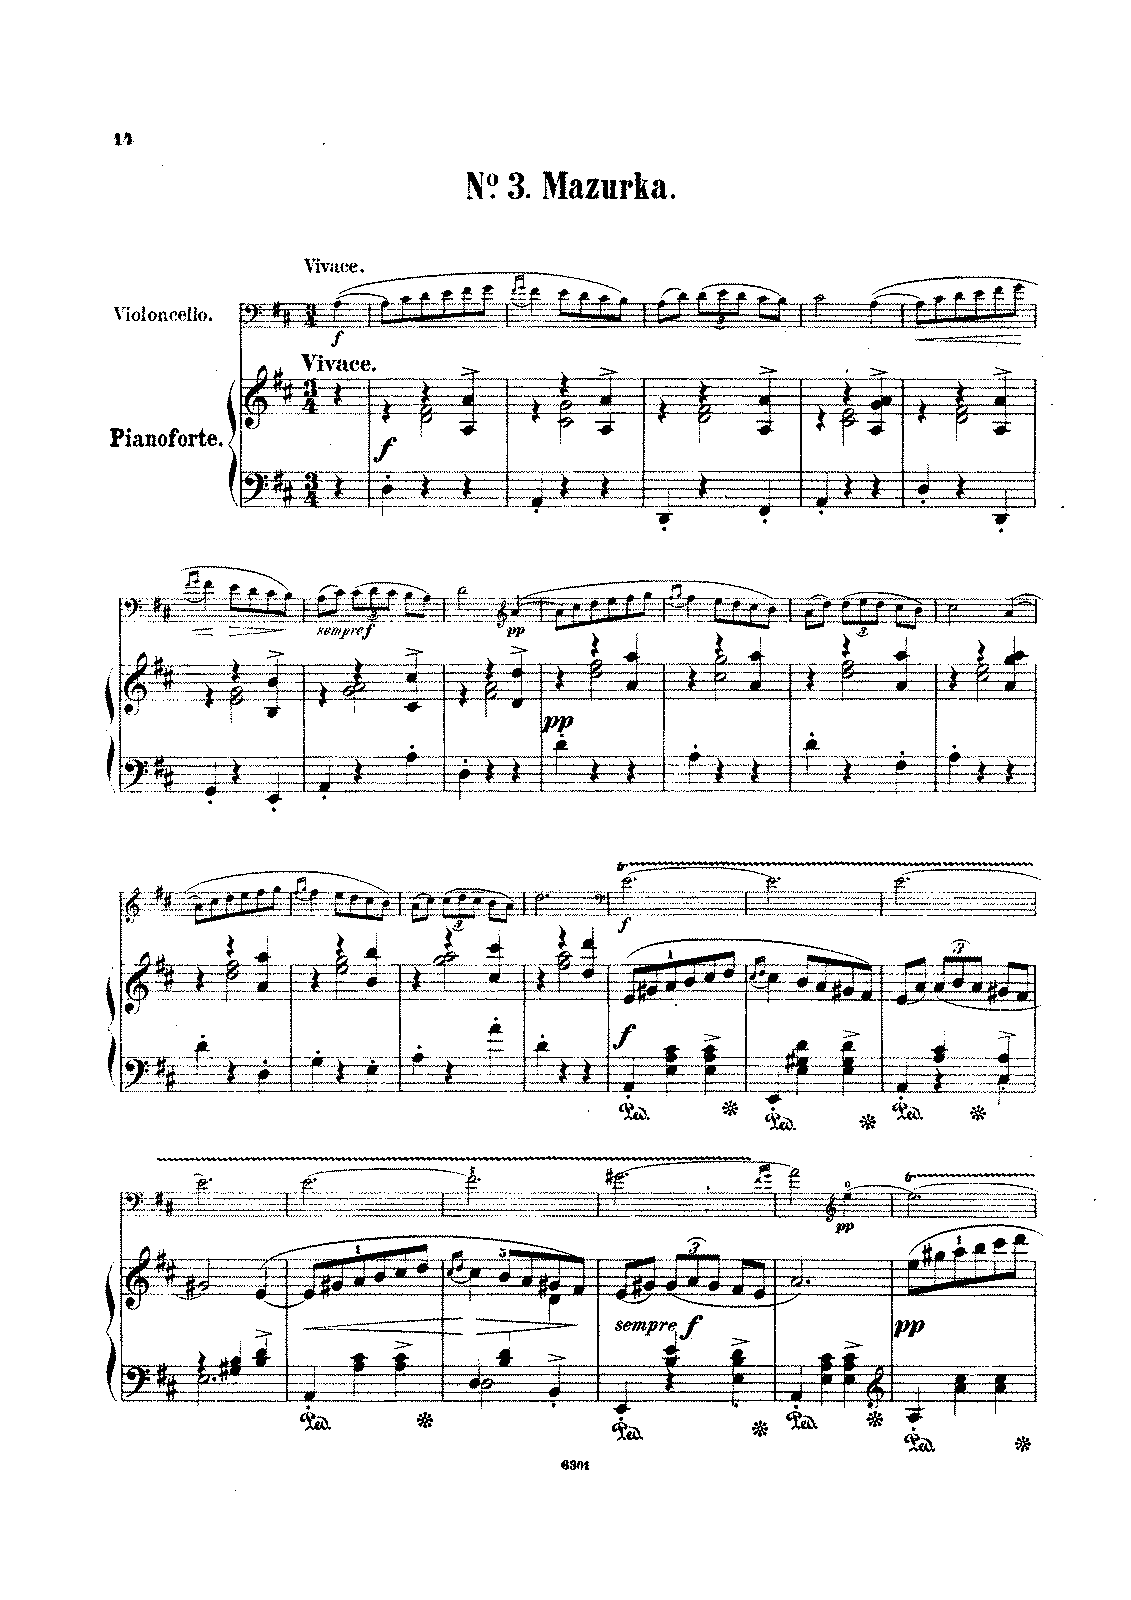 PMLP02284-Chopin - 3a Mazurka Op33 No2 for Cello and Piano (Grutzmacher) score.pdf